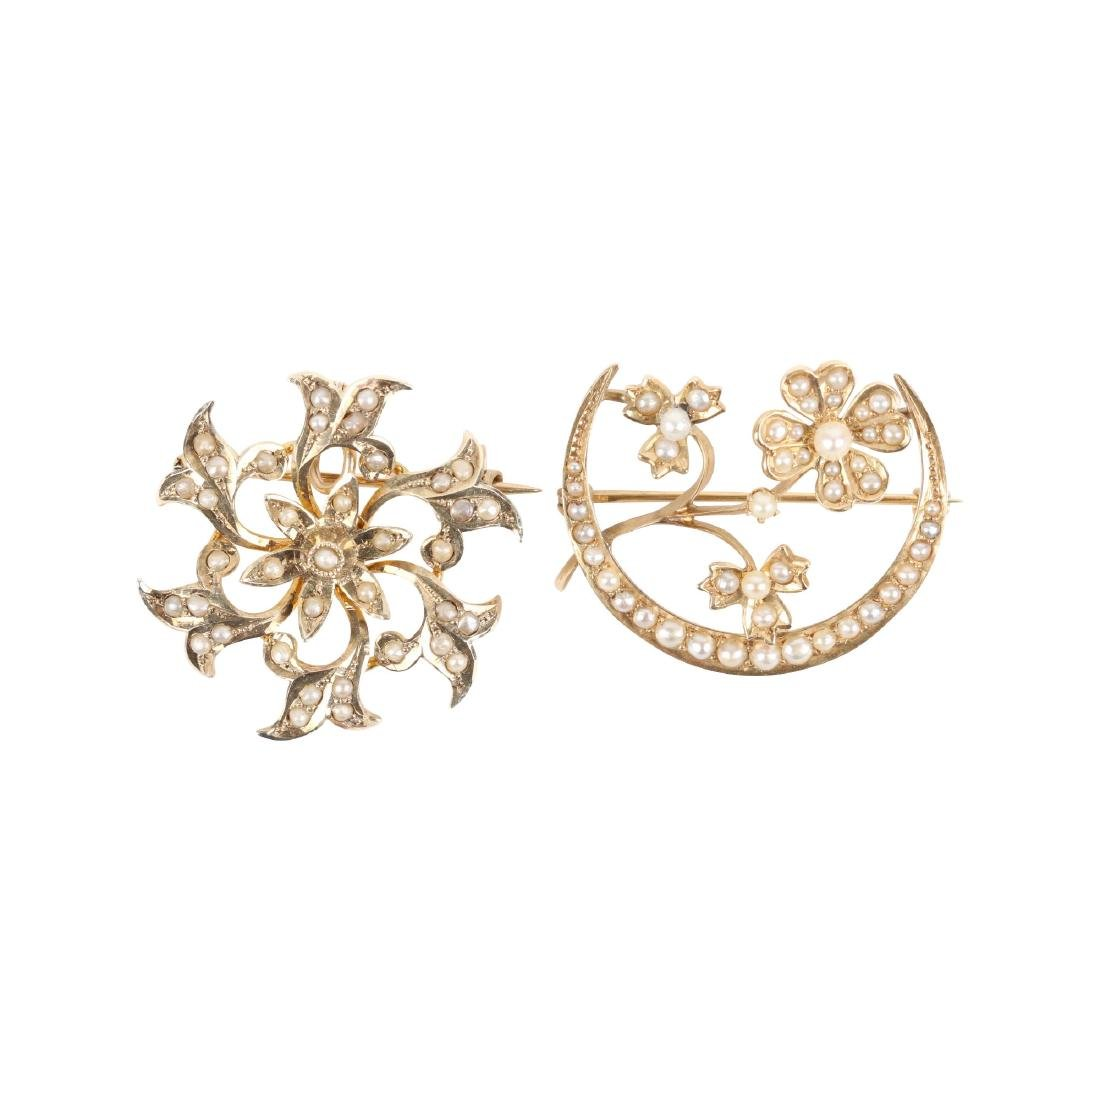 A Pair, Gold & Seed Pearl Brooches